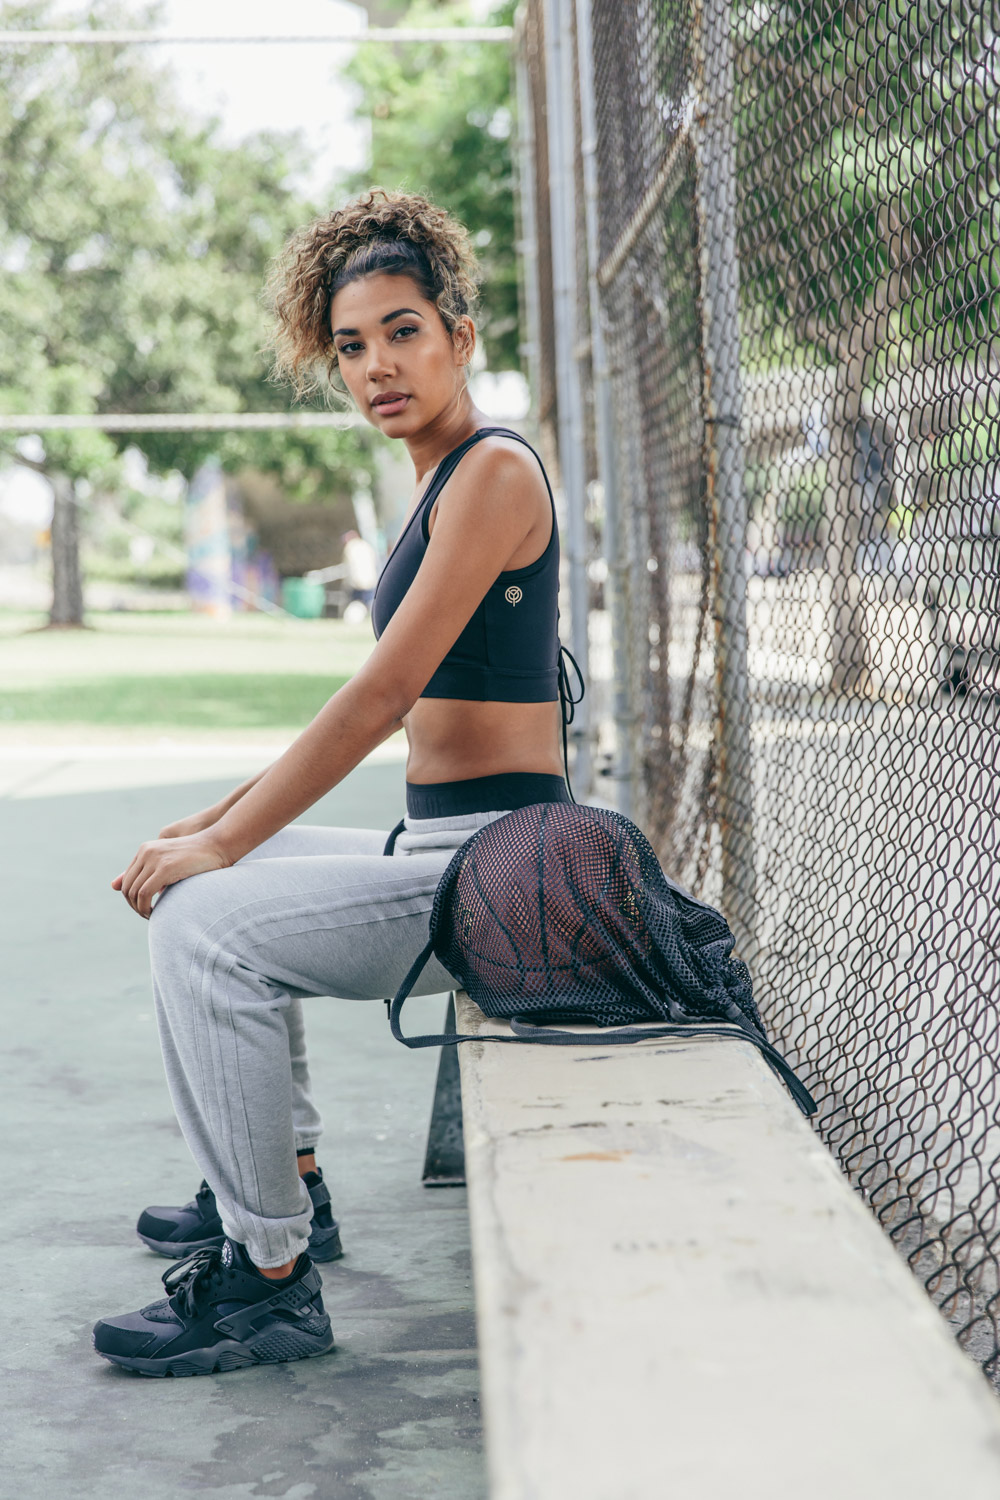 Year of Ours Sports portraits by Jenny Siegwart: Woman in sports bra on the basketball court